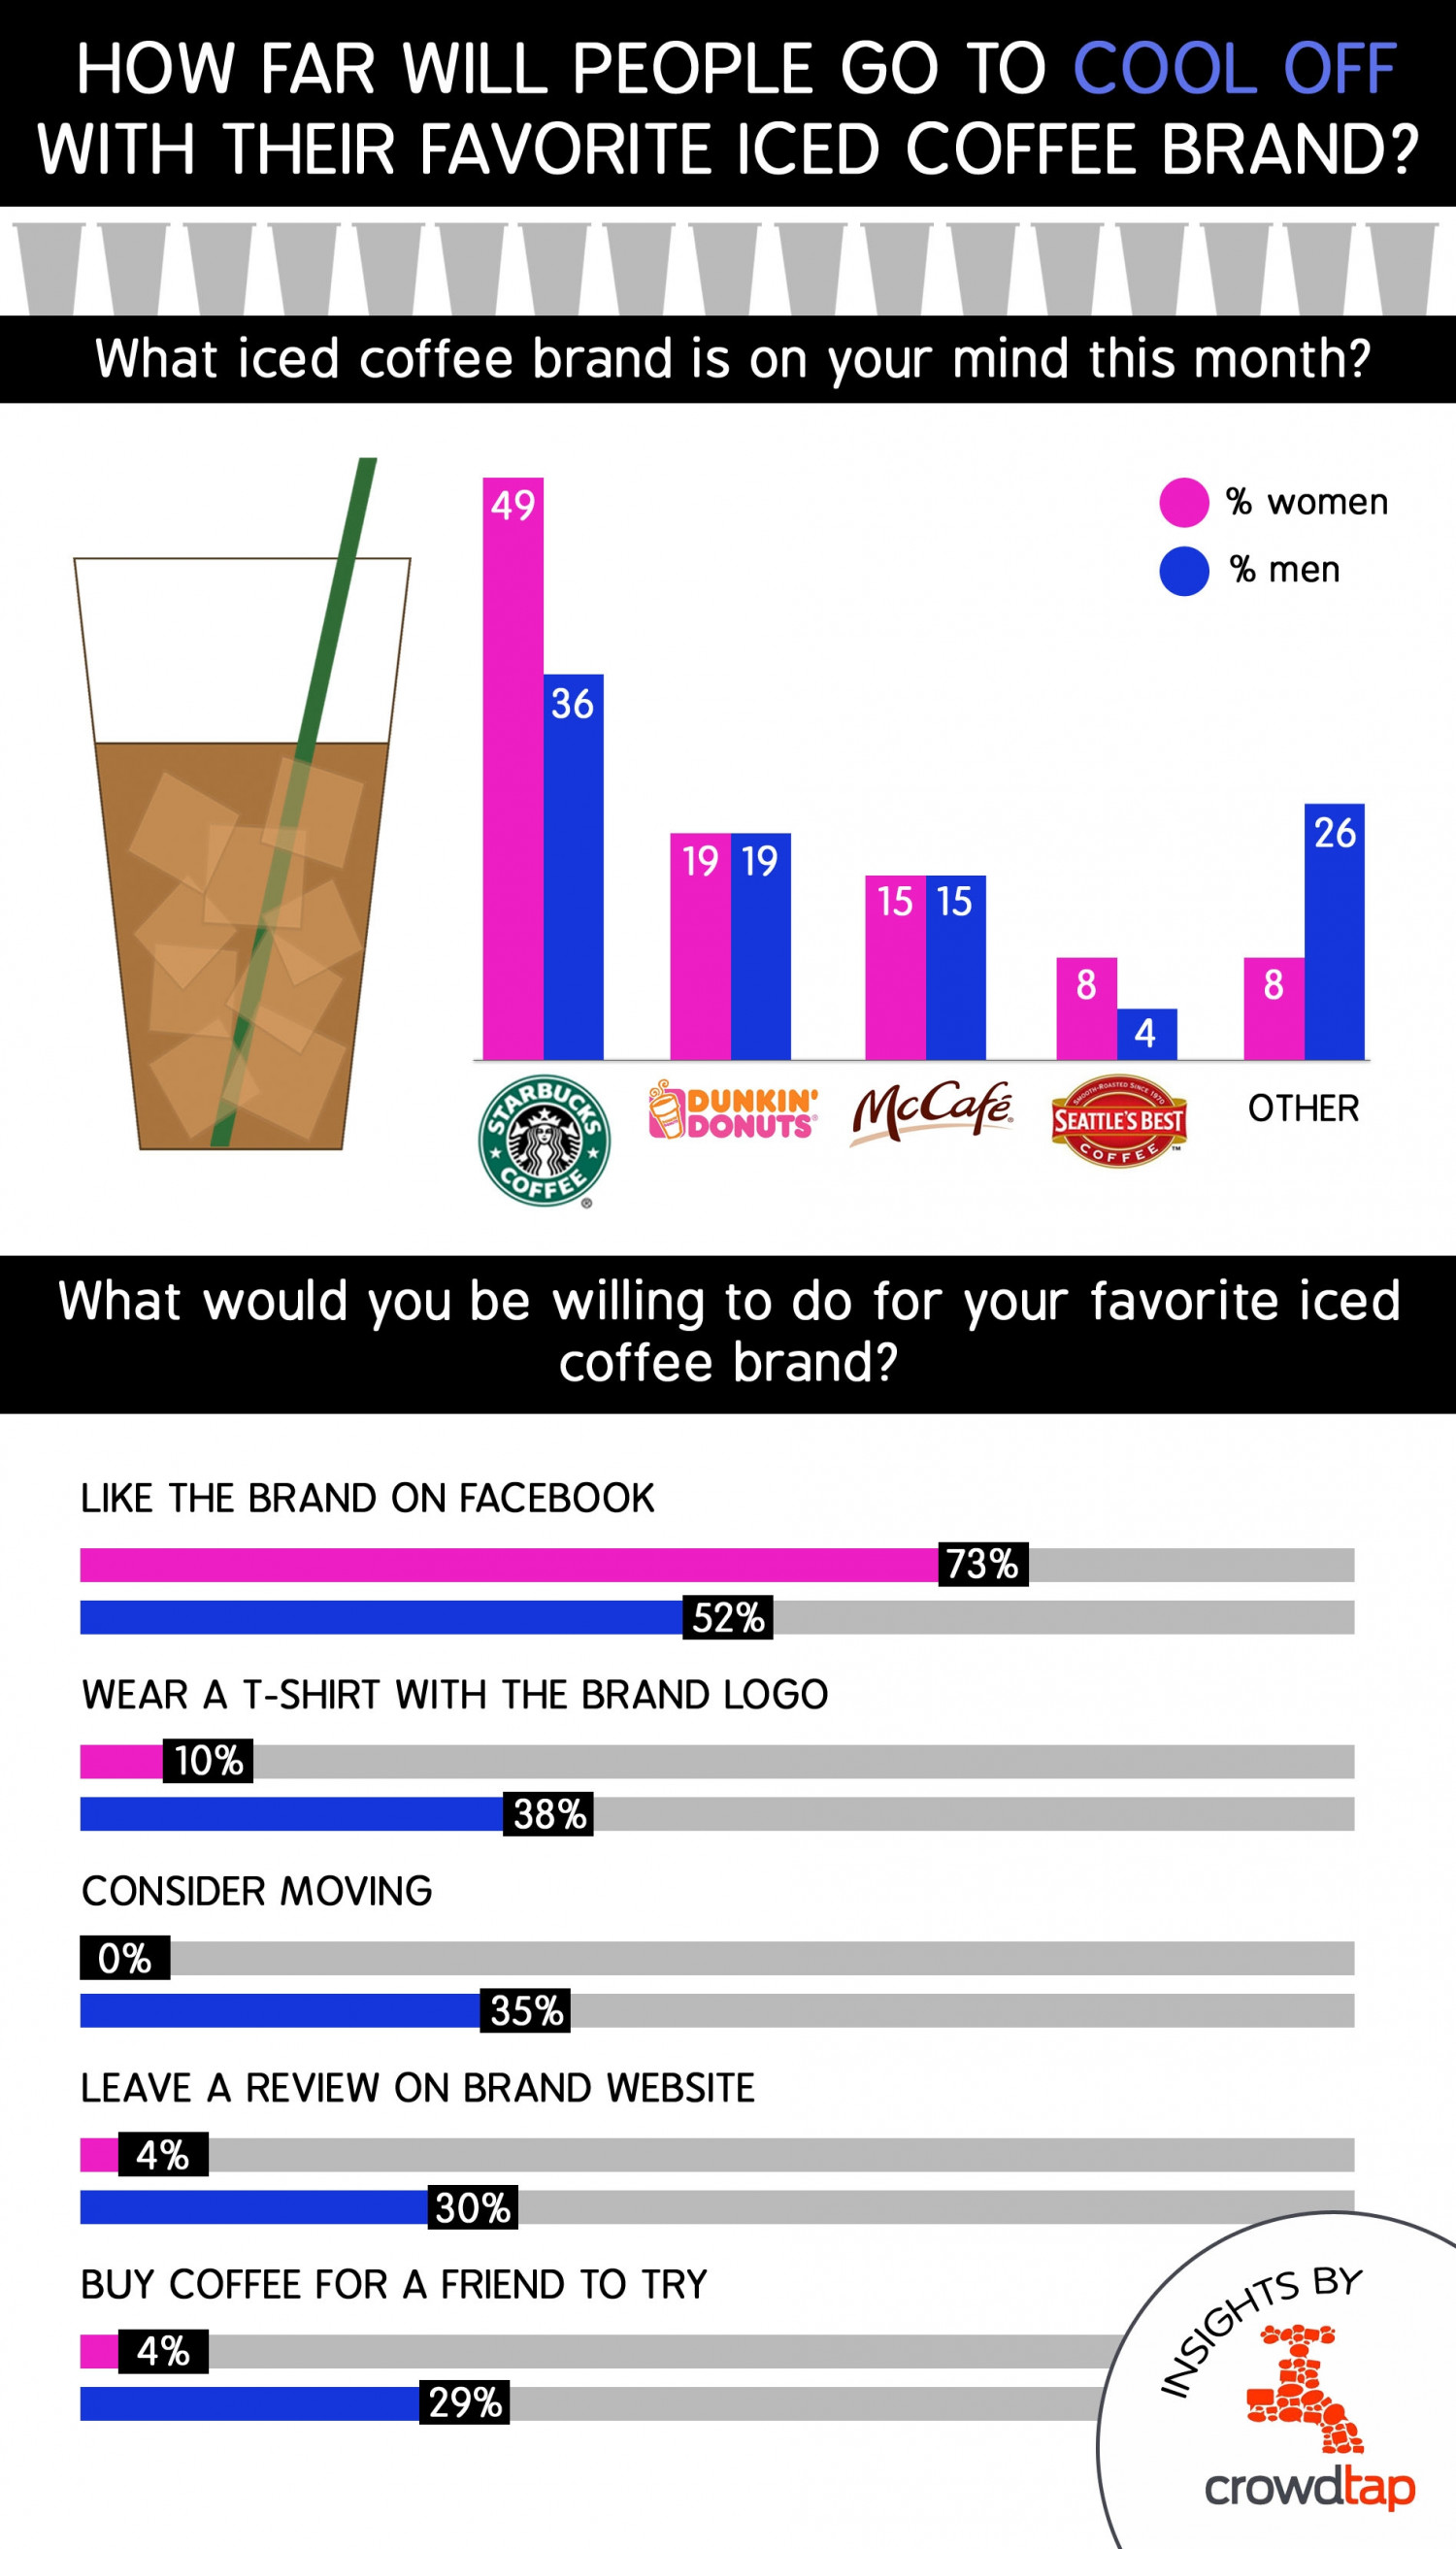 How far will people go to cool off with their favorite iced coffee brand? Infographic